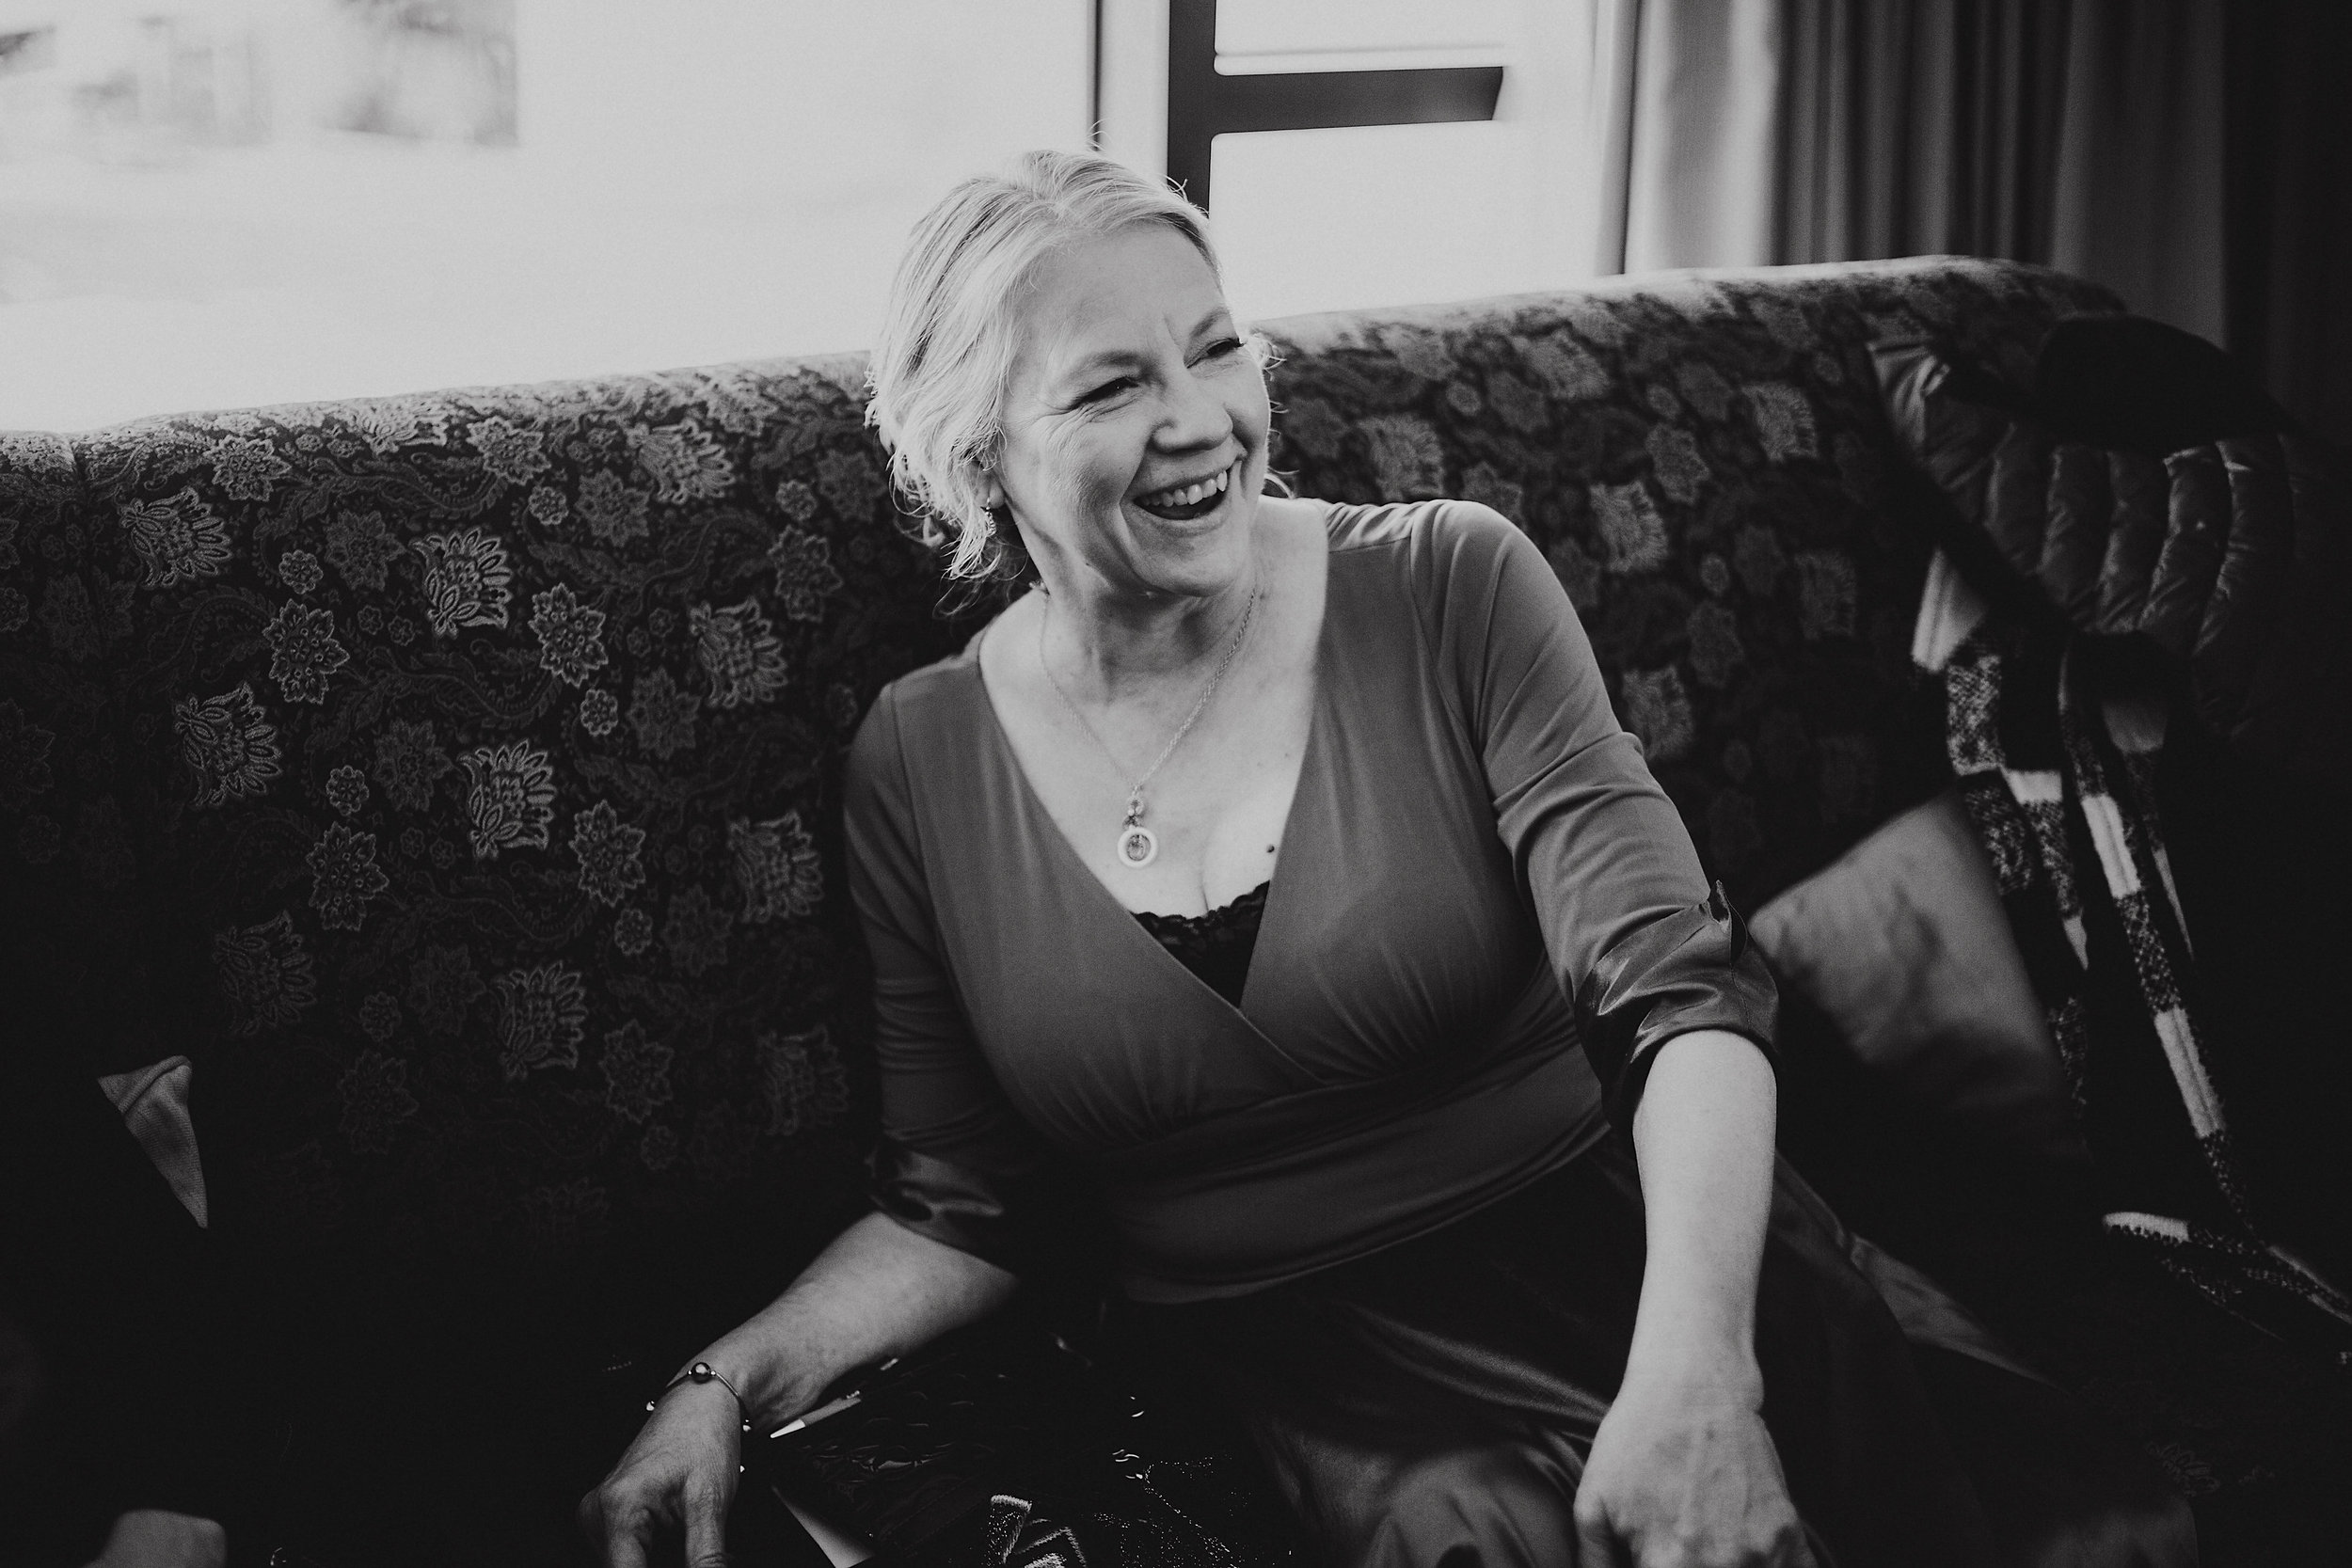 Woman laughing in wedding day photo.